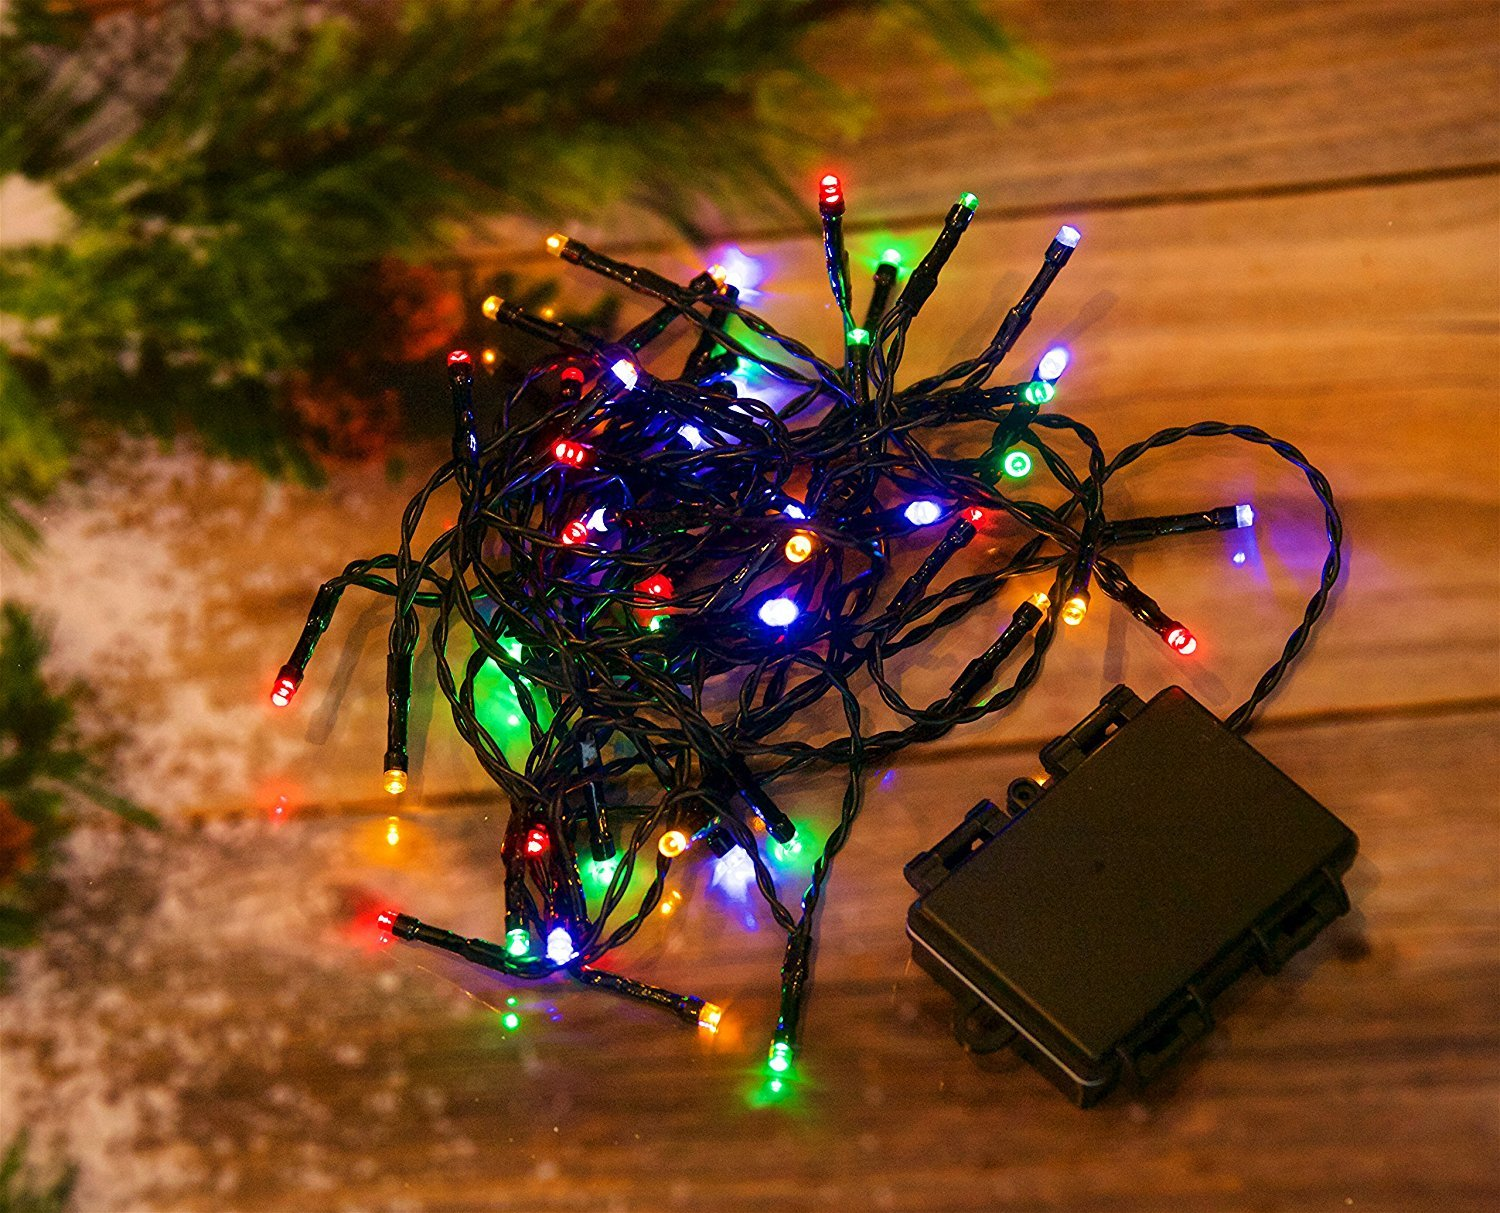 30 Blue LED Outdoor Waterproof Battery 8 Multi-Function with Timer String Lights Xmas Garden Christmas Party Fairy Best Artificial